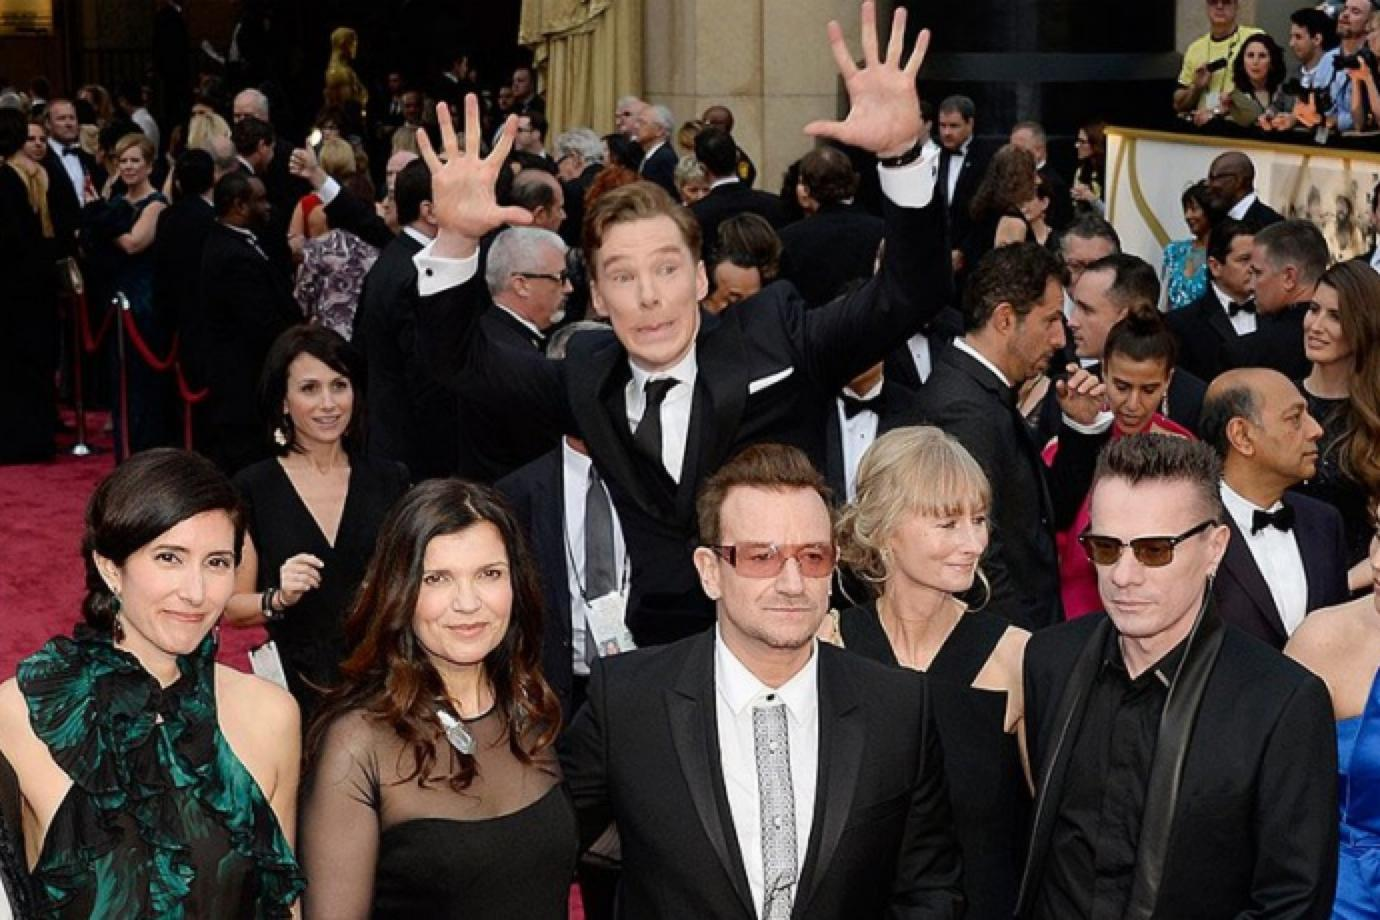 Benedict Cumberbatch blames Ellen DeGeneres and her red carpet booze for that U2 photobomb. http://t.co/Y5TQyMHQO7 http://t.co/midQO6GZmb